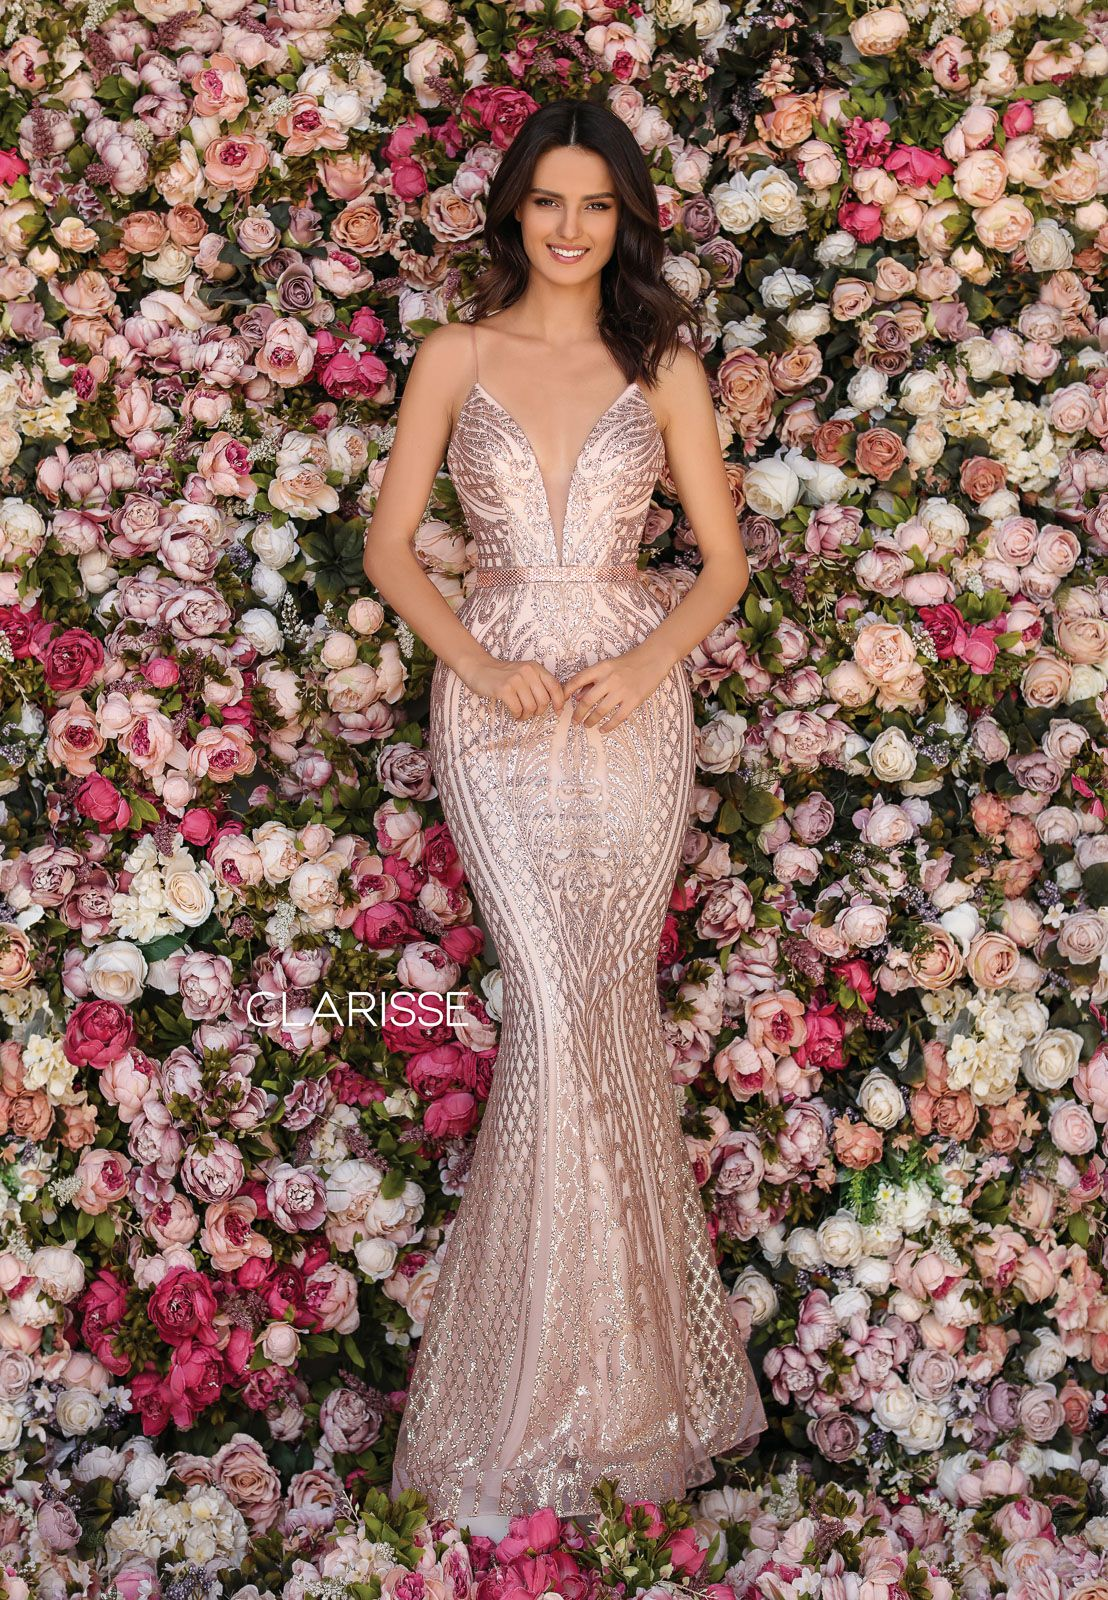 Clarisse Dress 6 Rose Gold Intricate Embroidery Gown Prom 6